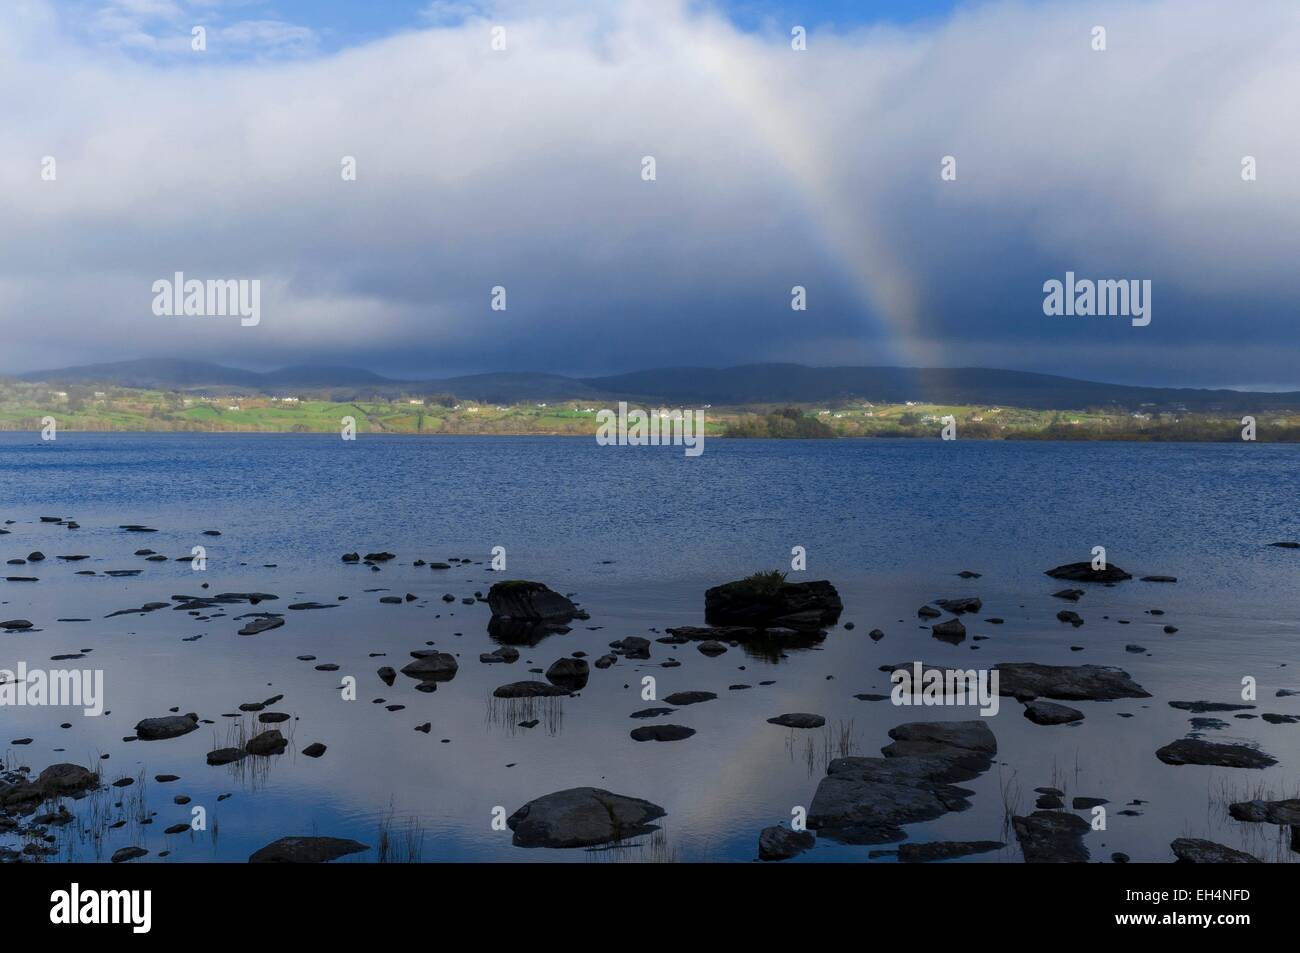 Ireland, Ulster, Donegal County, Glenveagh National Park, landscape lake - Stock Image